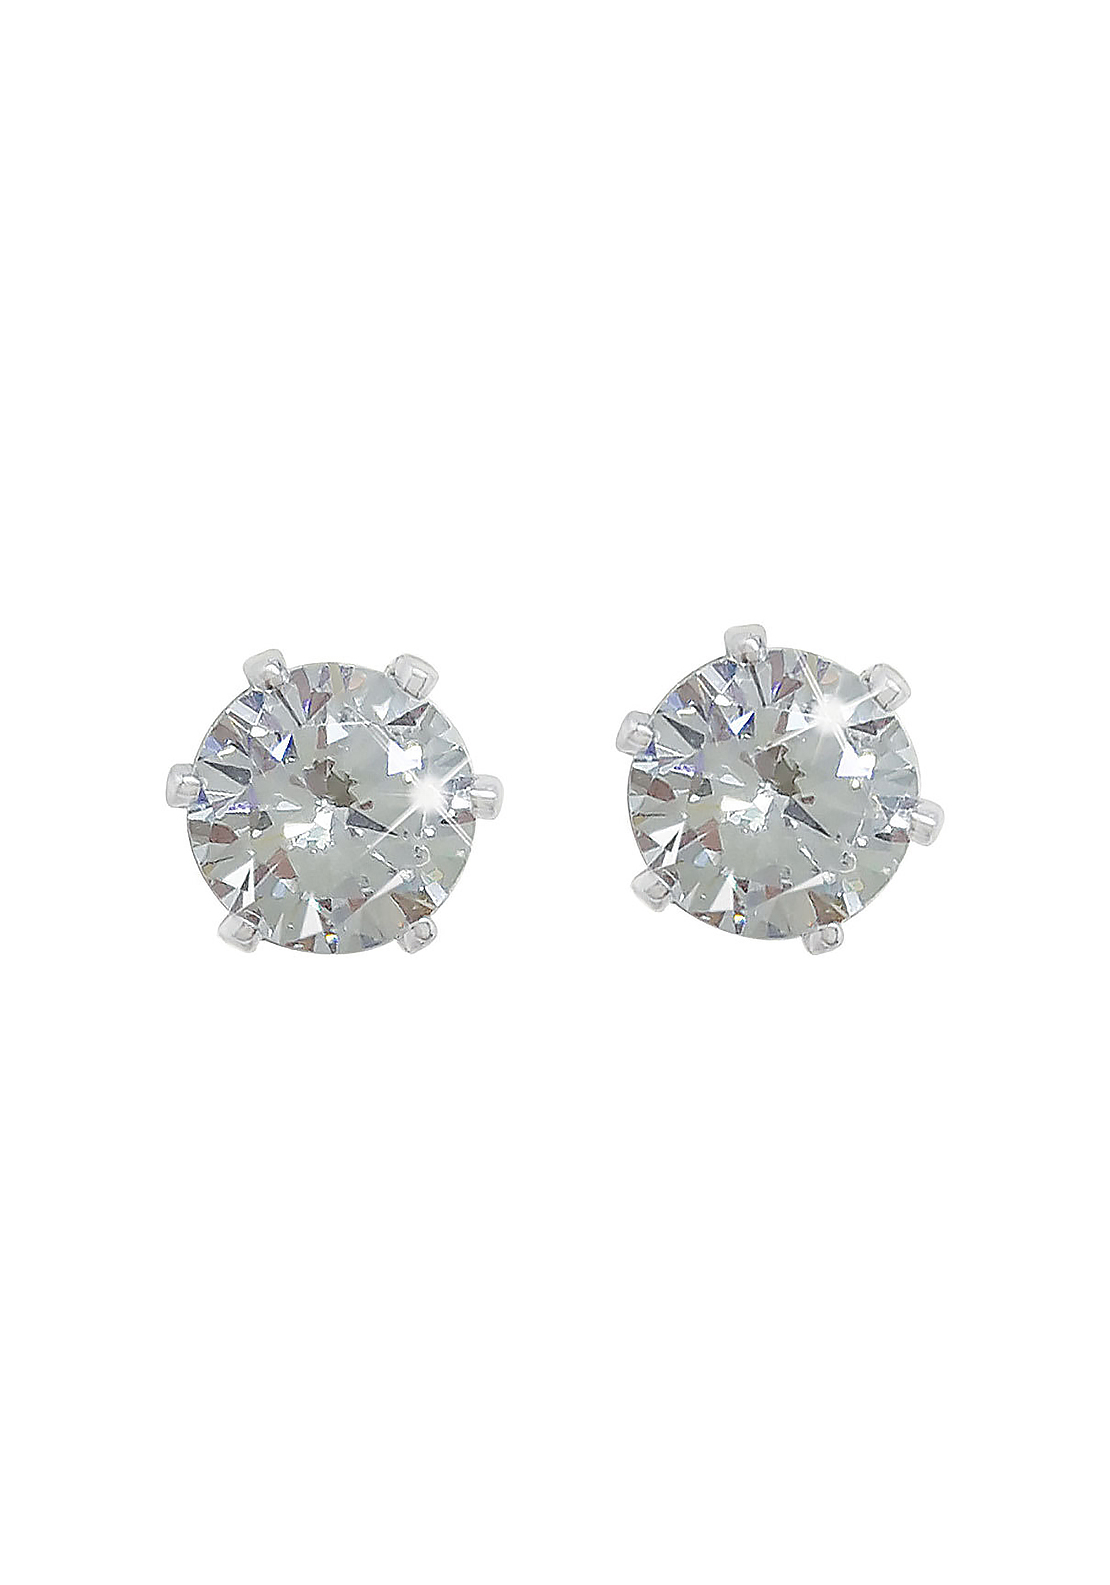 Tipperary Crystal Small 4mm Diamante Stud Earrings, Silver